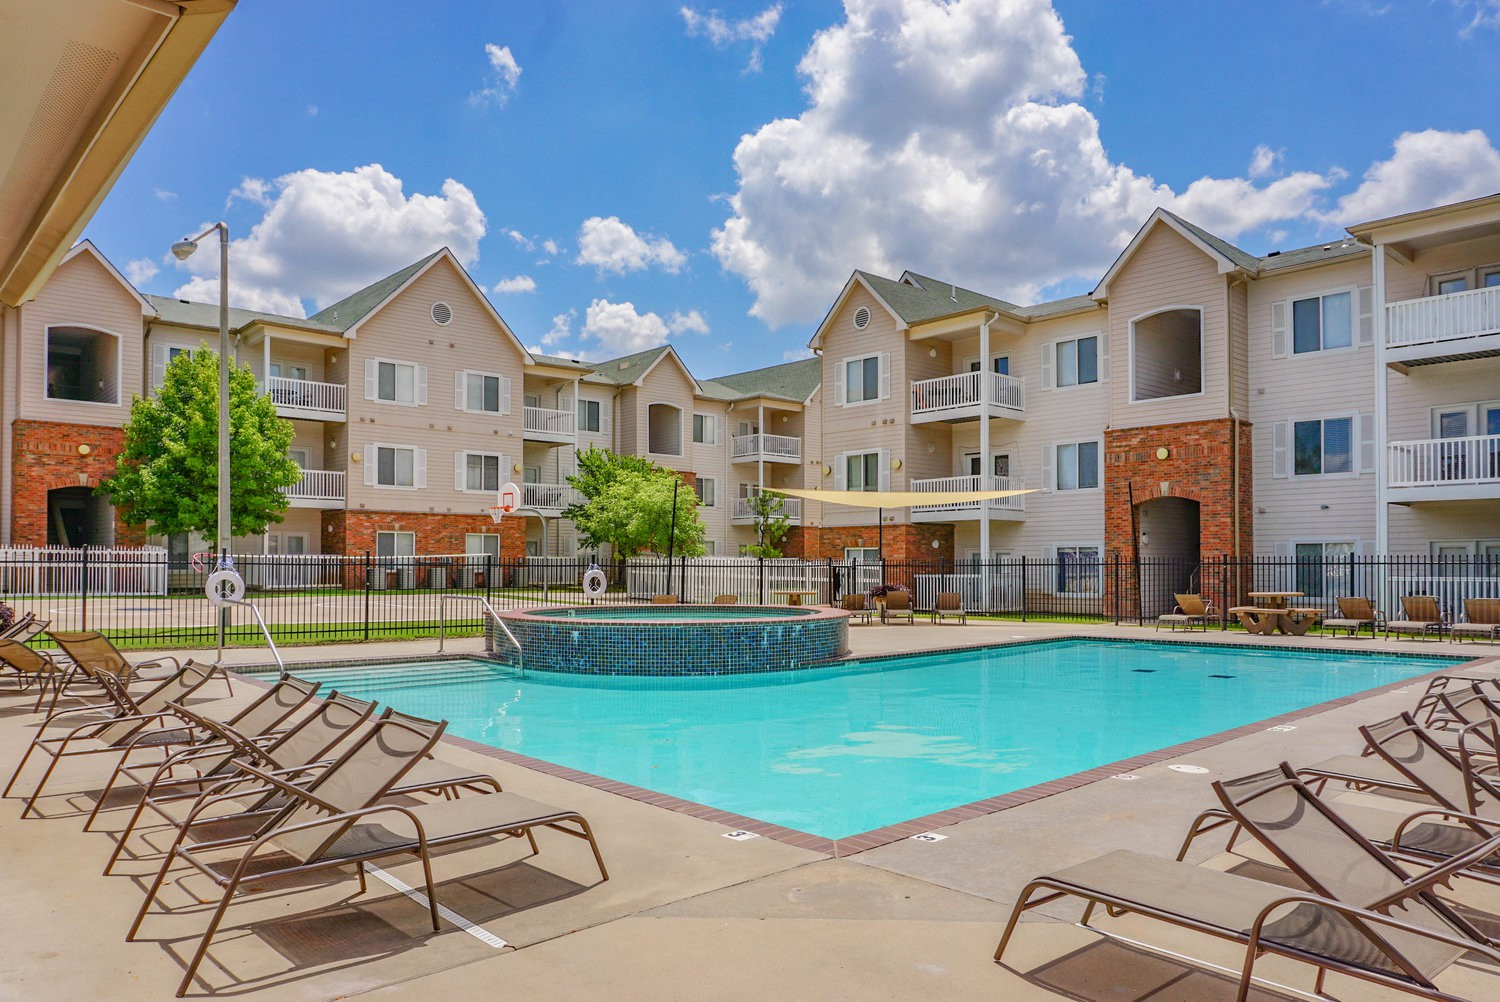 Apartments Near OU Edge of Norman (Price is per bedroom) for University of Oklahoma Students in Norman, OK